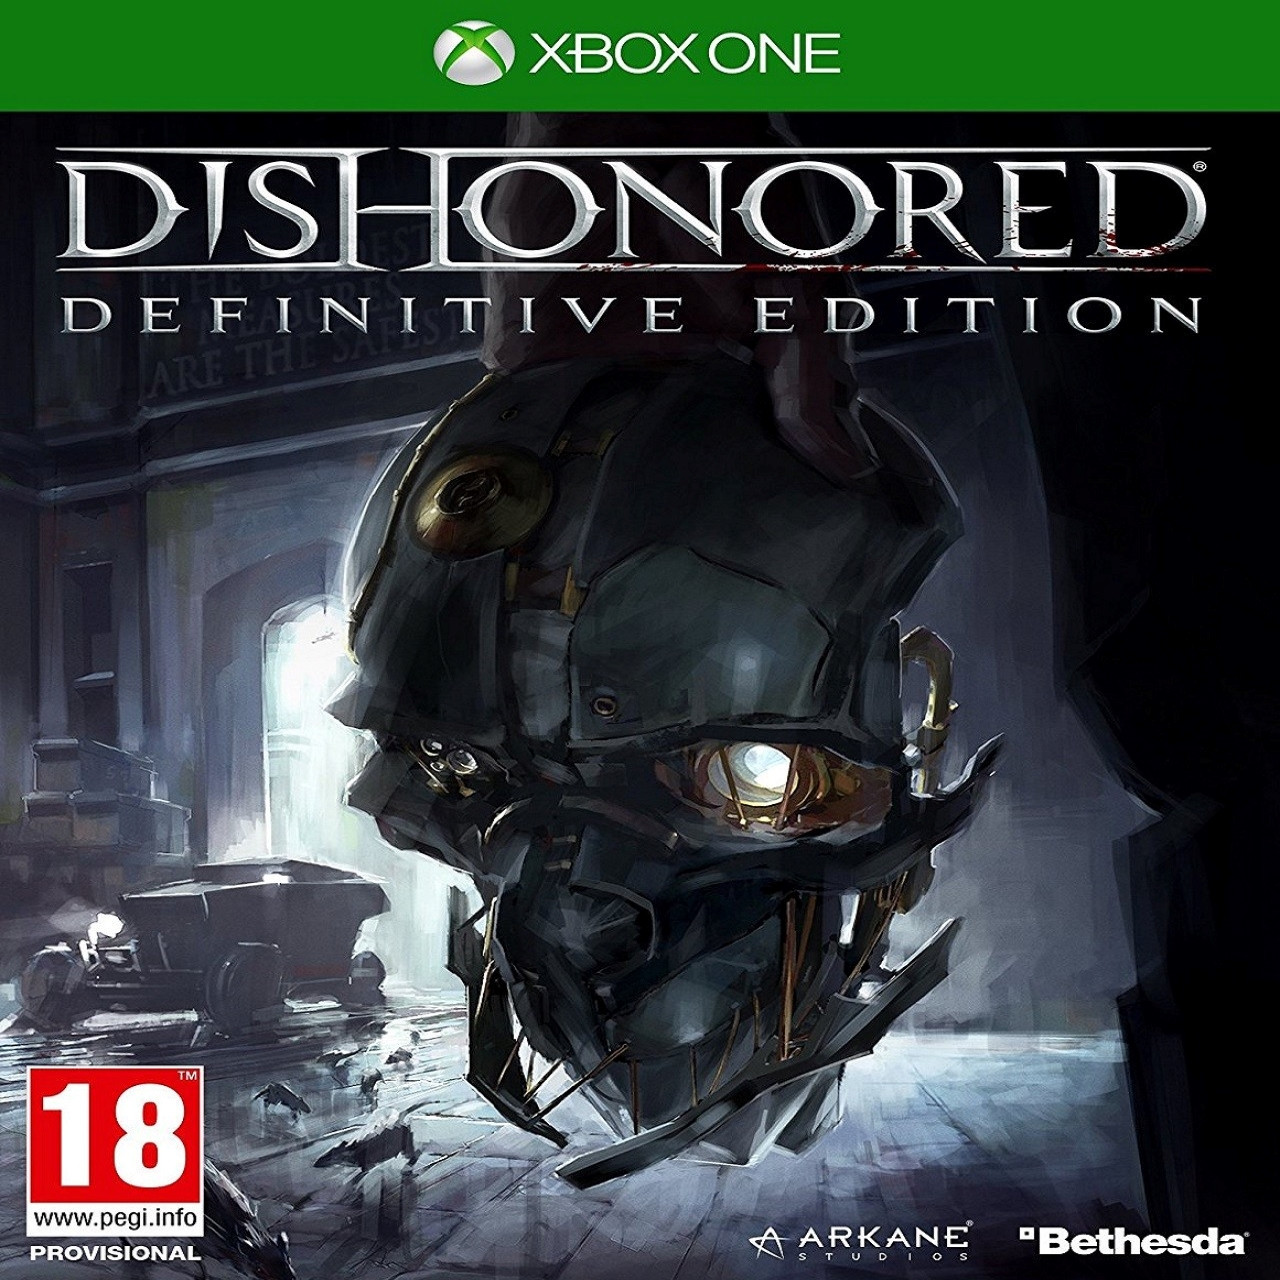 Dishonored:Definitive Edition RUS XBOX ONE (Б/В)